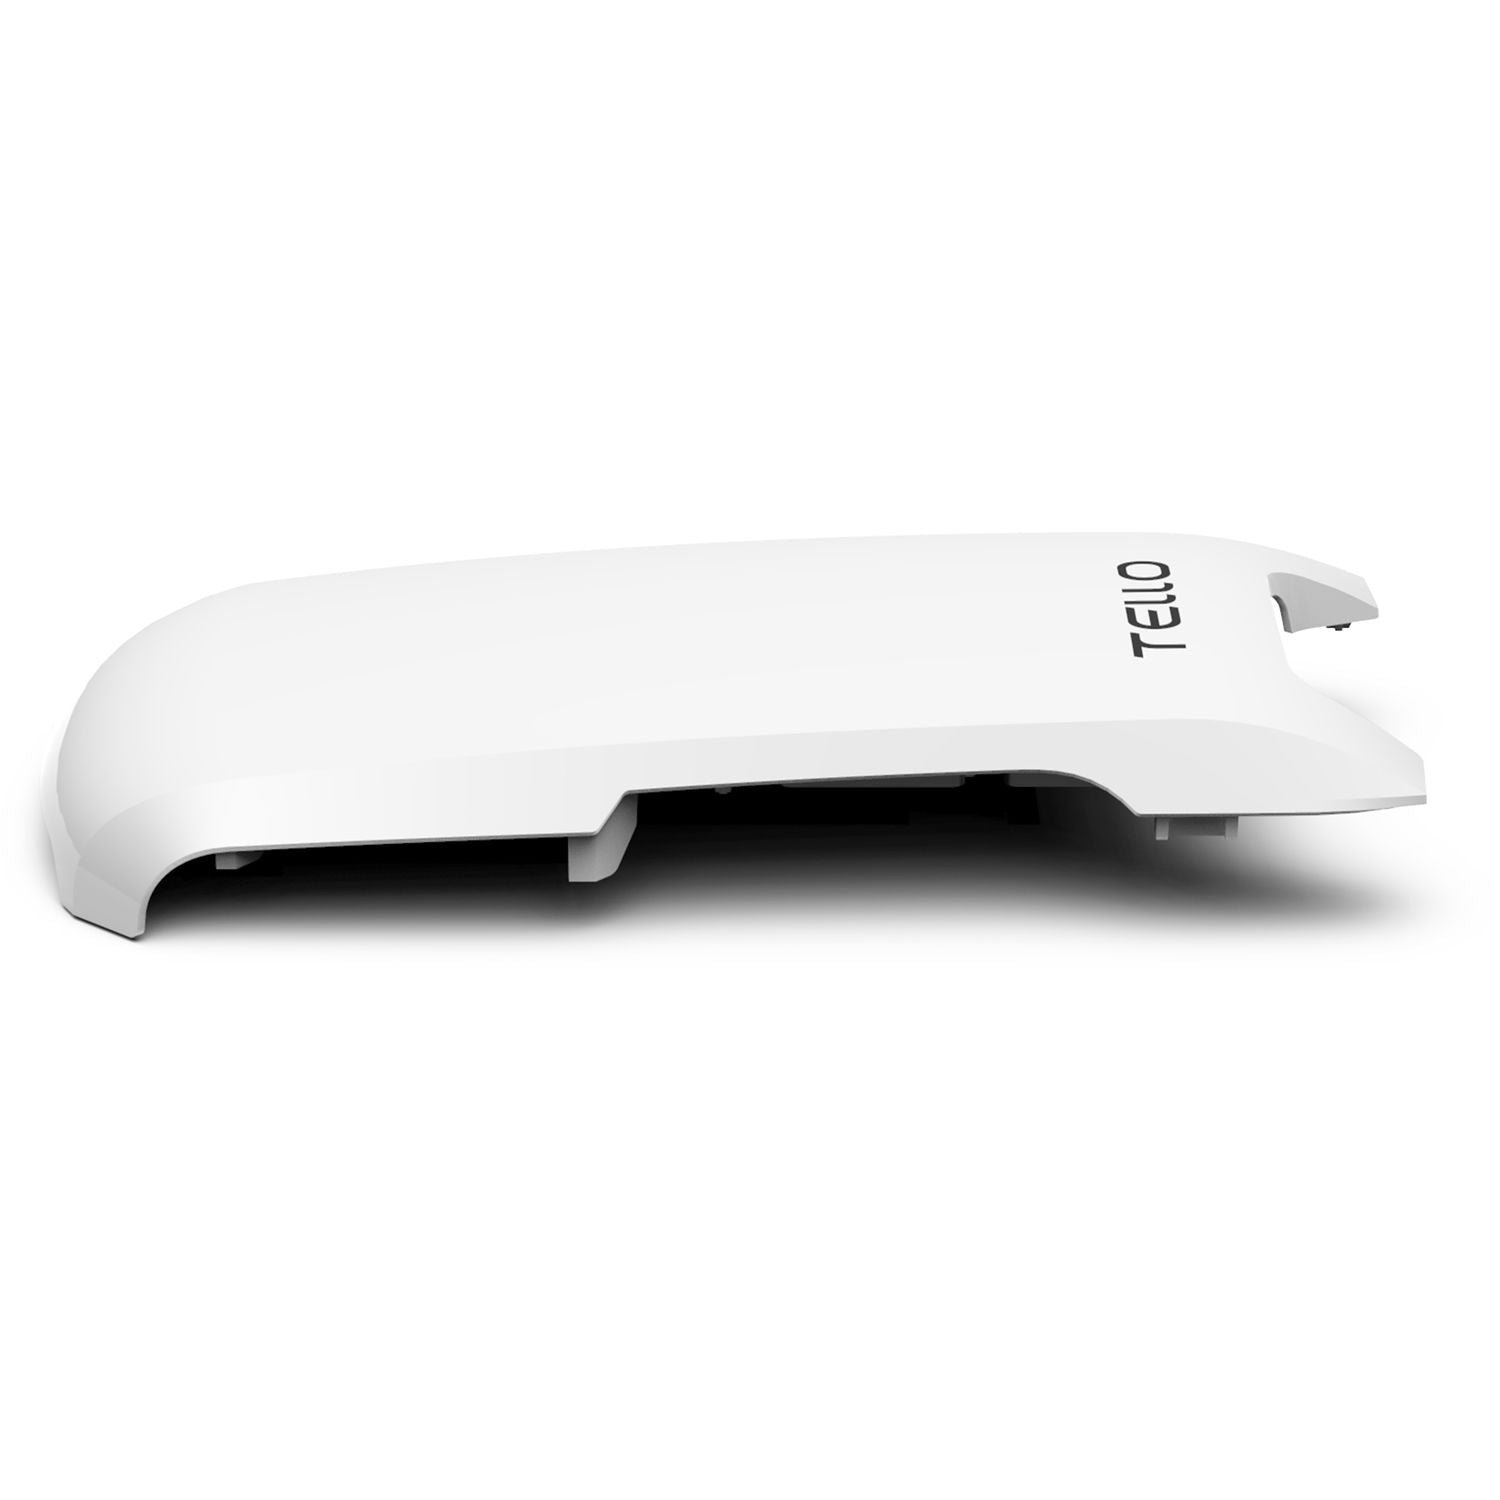 RYZE TELLO Part 6 Snap on Top Cover (White)